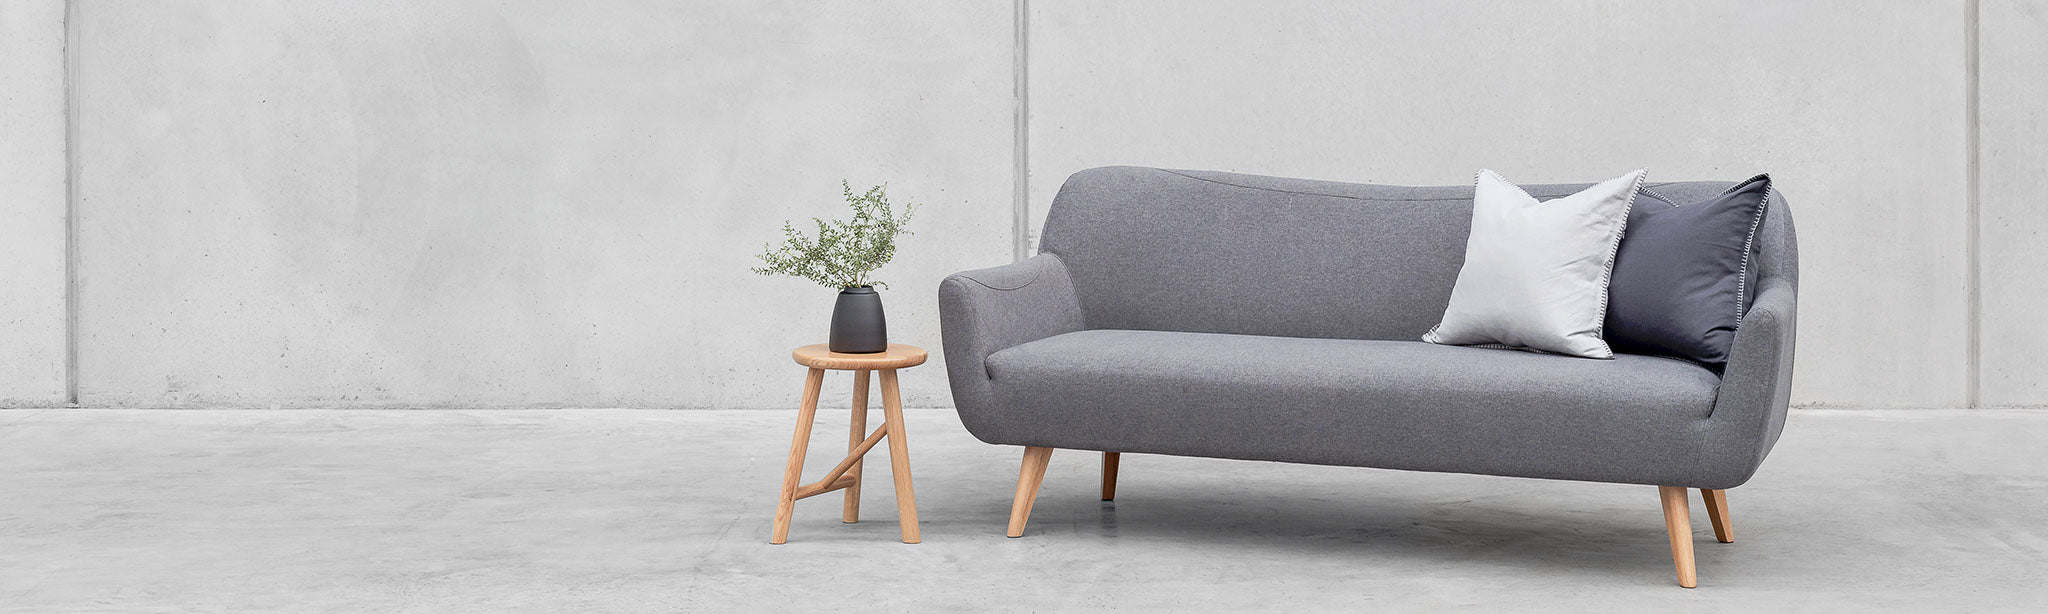 Tremendous Scandinavian Sofas For Sale Melbourne Buy Sofas Online Sydney Beatyapartments Chair Design Images Beatyapartmentscom